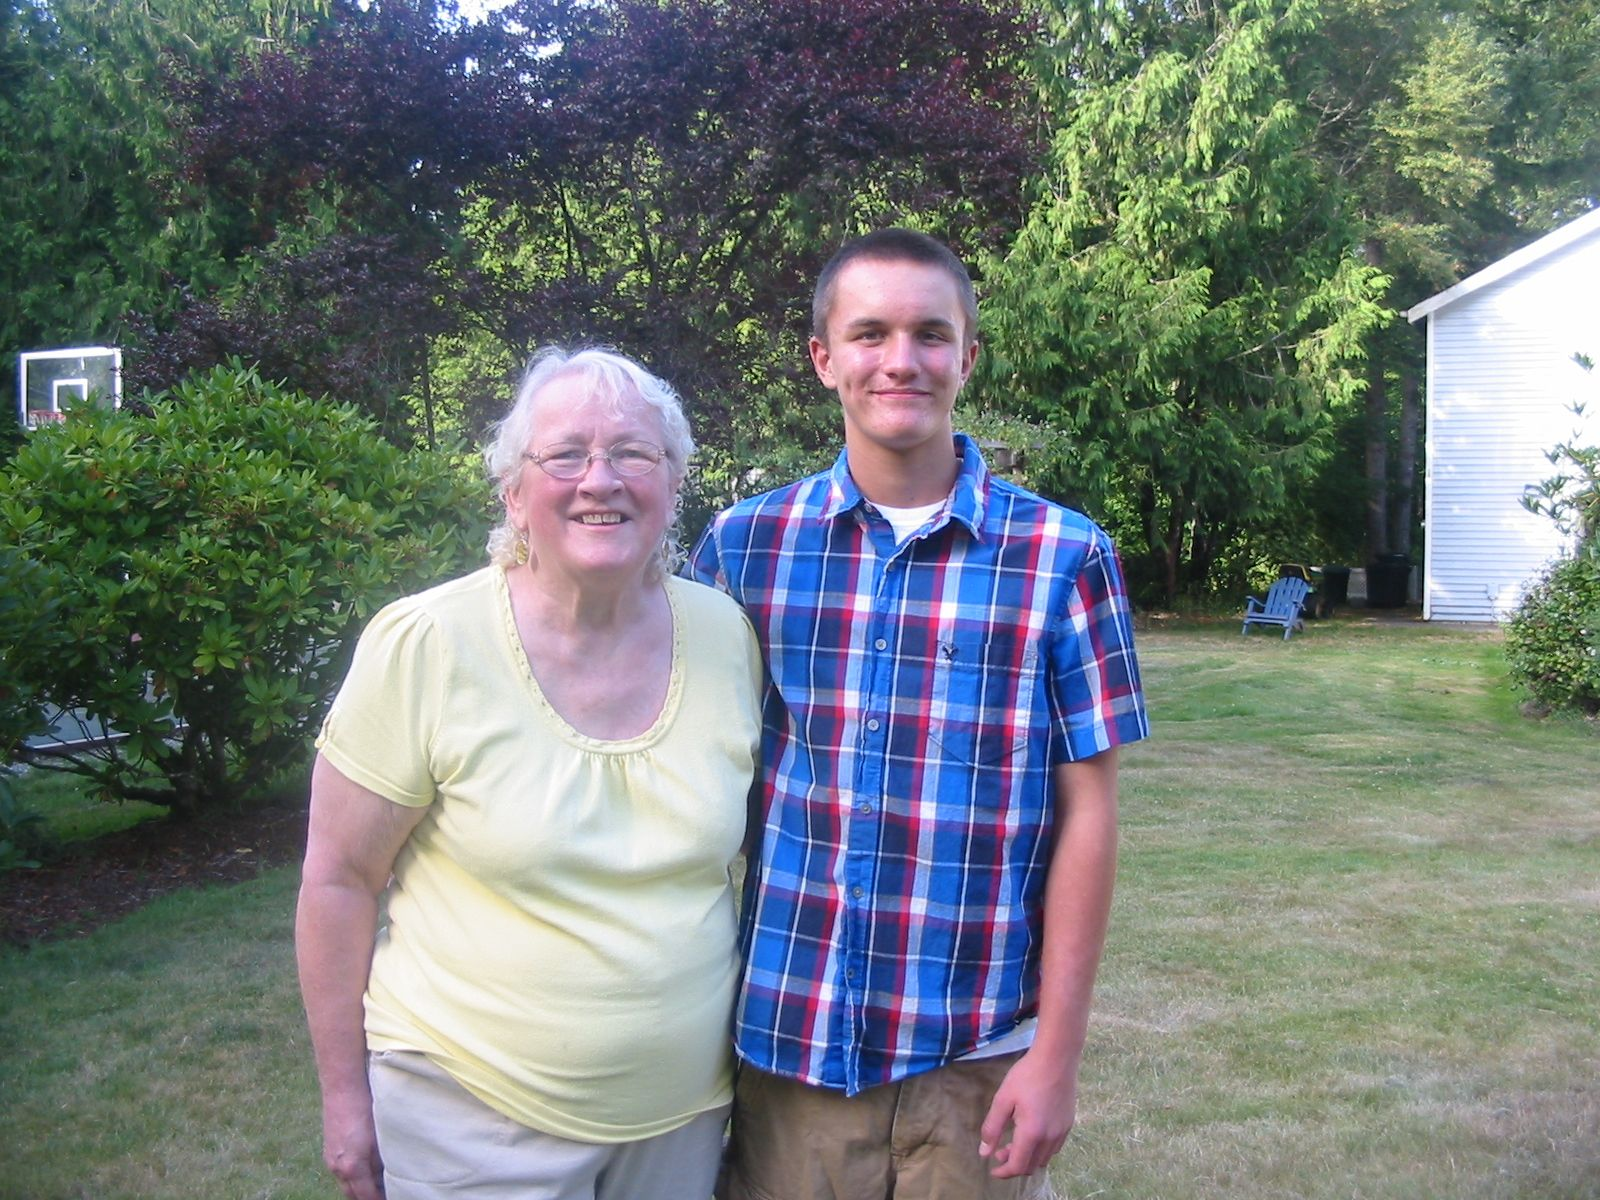 Nick and Grandma Carole 7/26/11